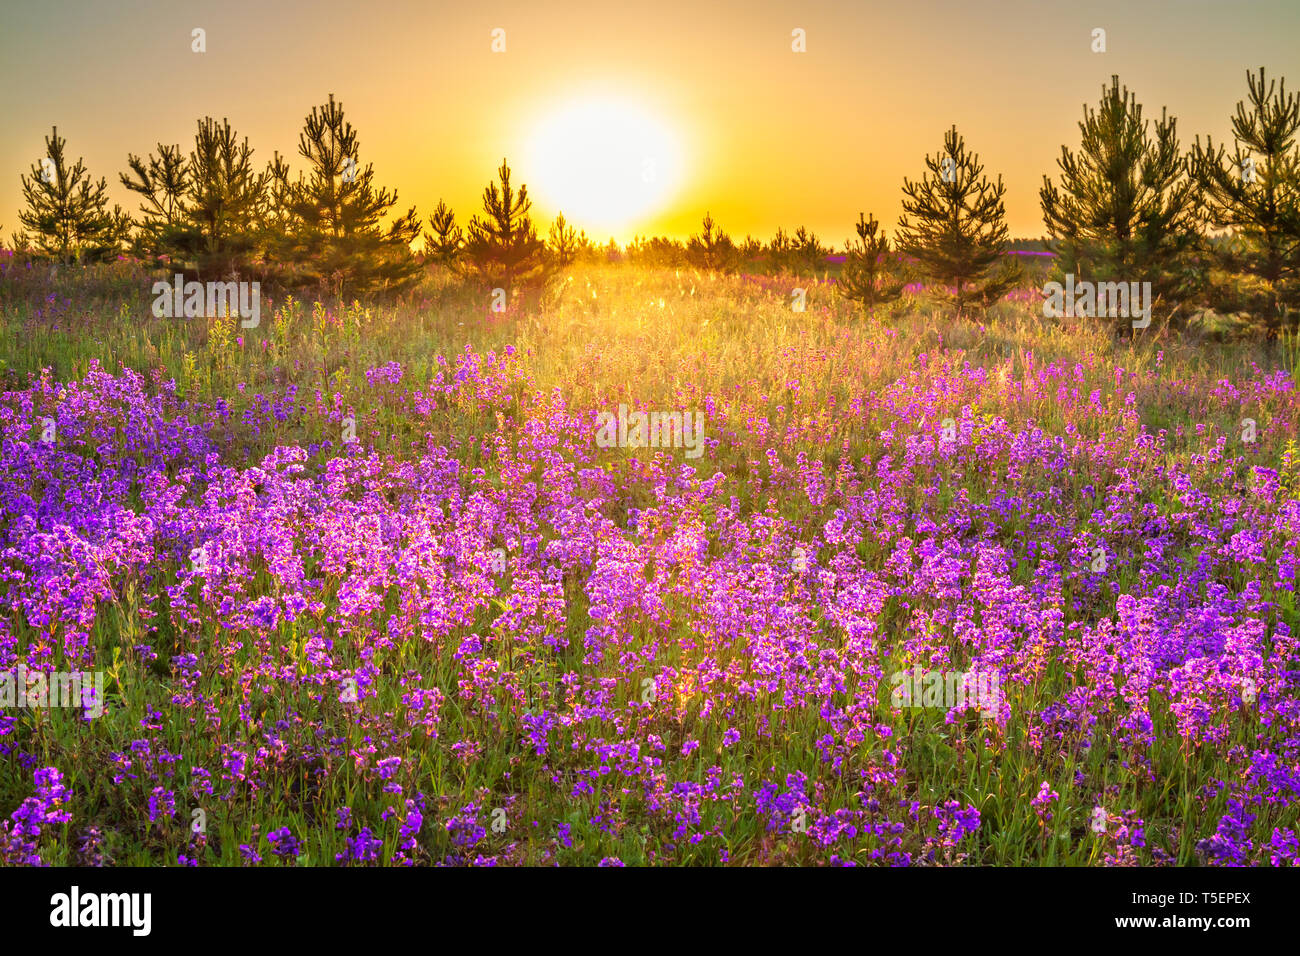 Beautiful Spring Landscape With Flowering Purple Flowers On Meadow And Sunrise Wildflowers Blooming On Summer Field Wild Scenery With Sunset Wonder Stock Photo Alamy